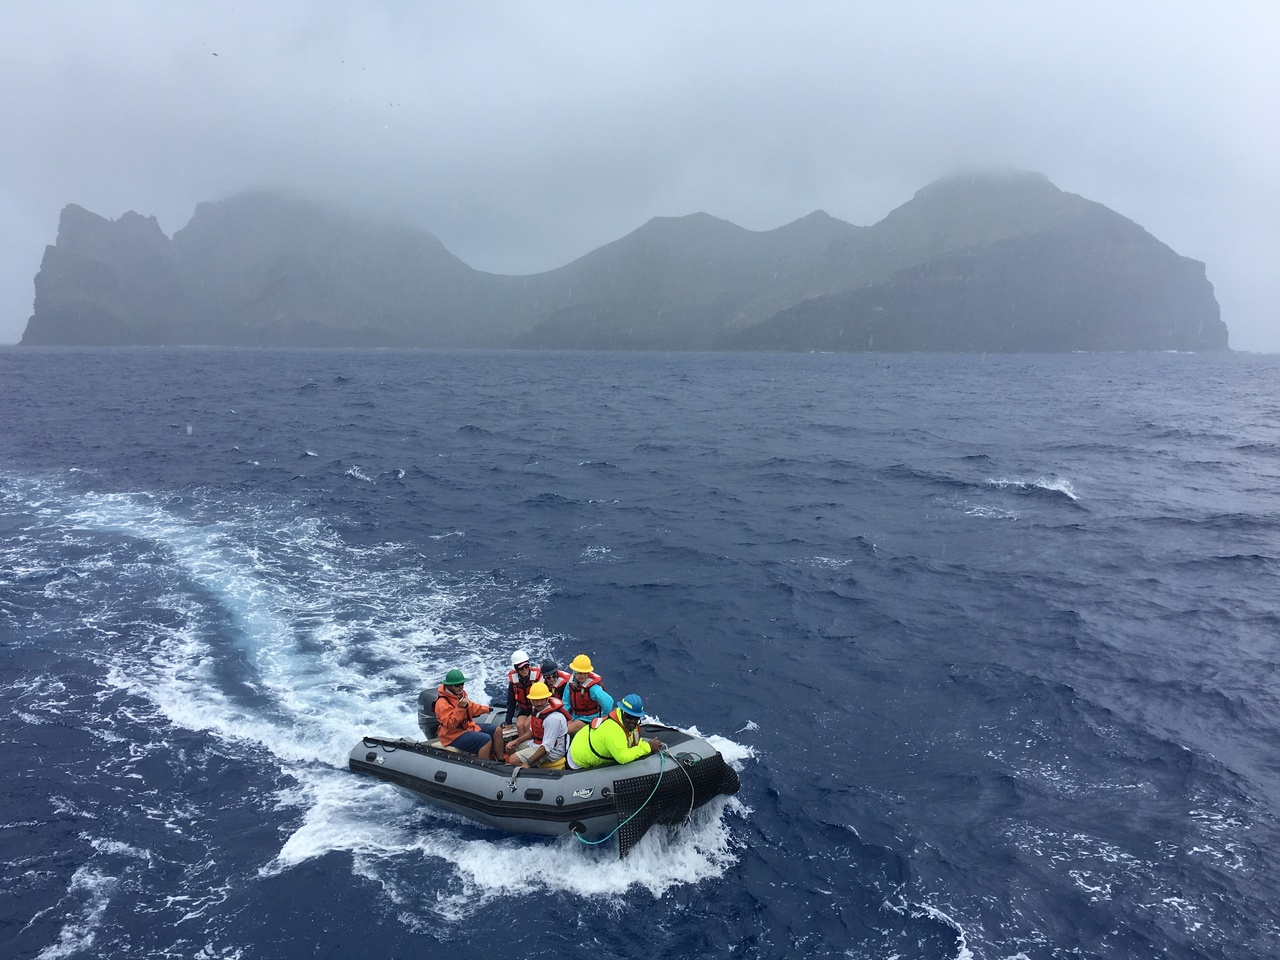 The small boat returns to NOAA Ship Oscar Elton Sette after a rainy butsuccessful day on Nihoa surveying for Hawaiian monk seals